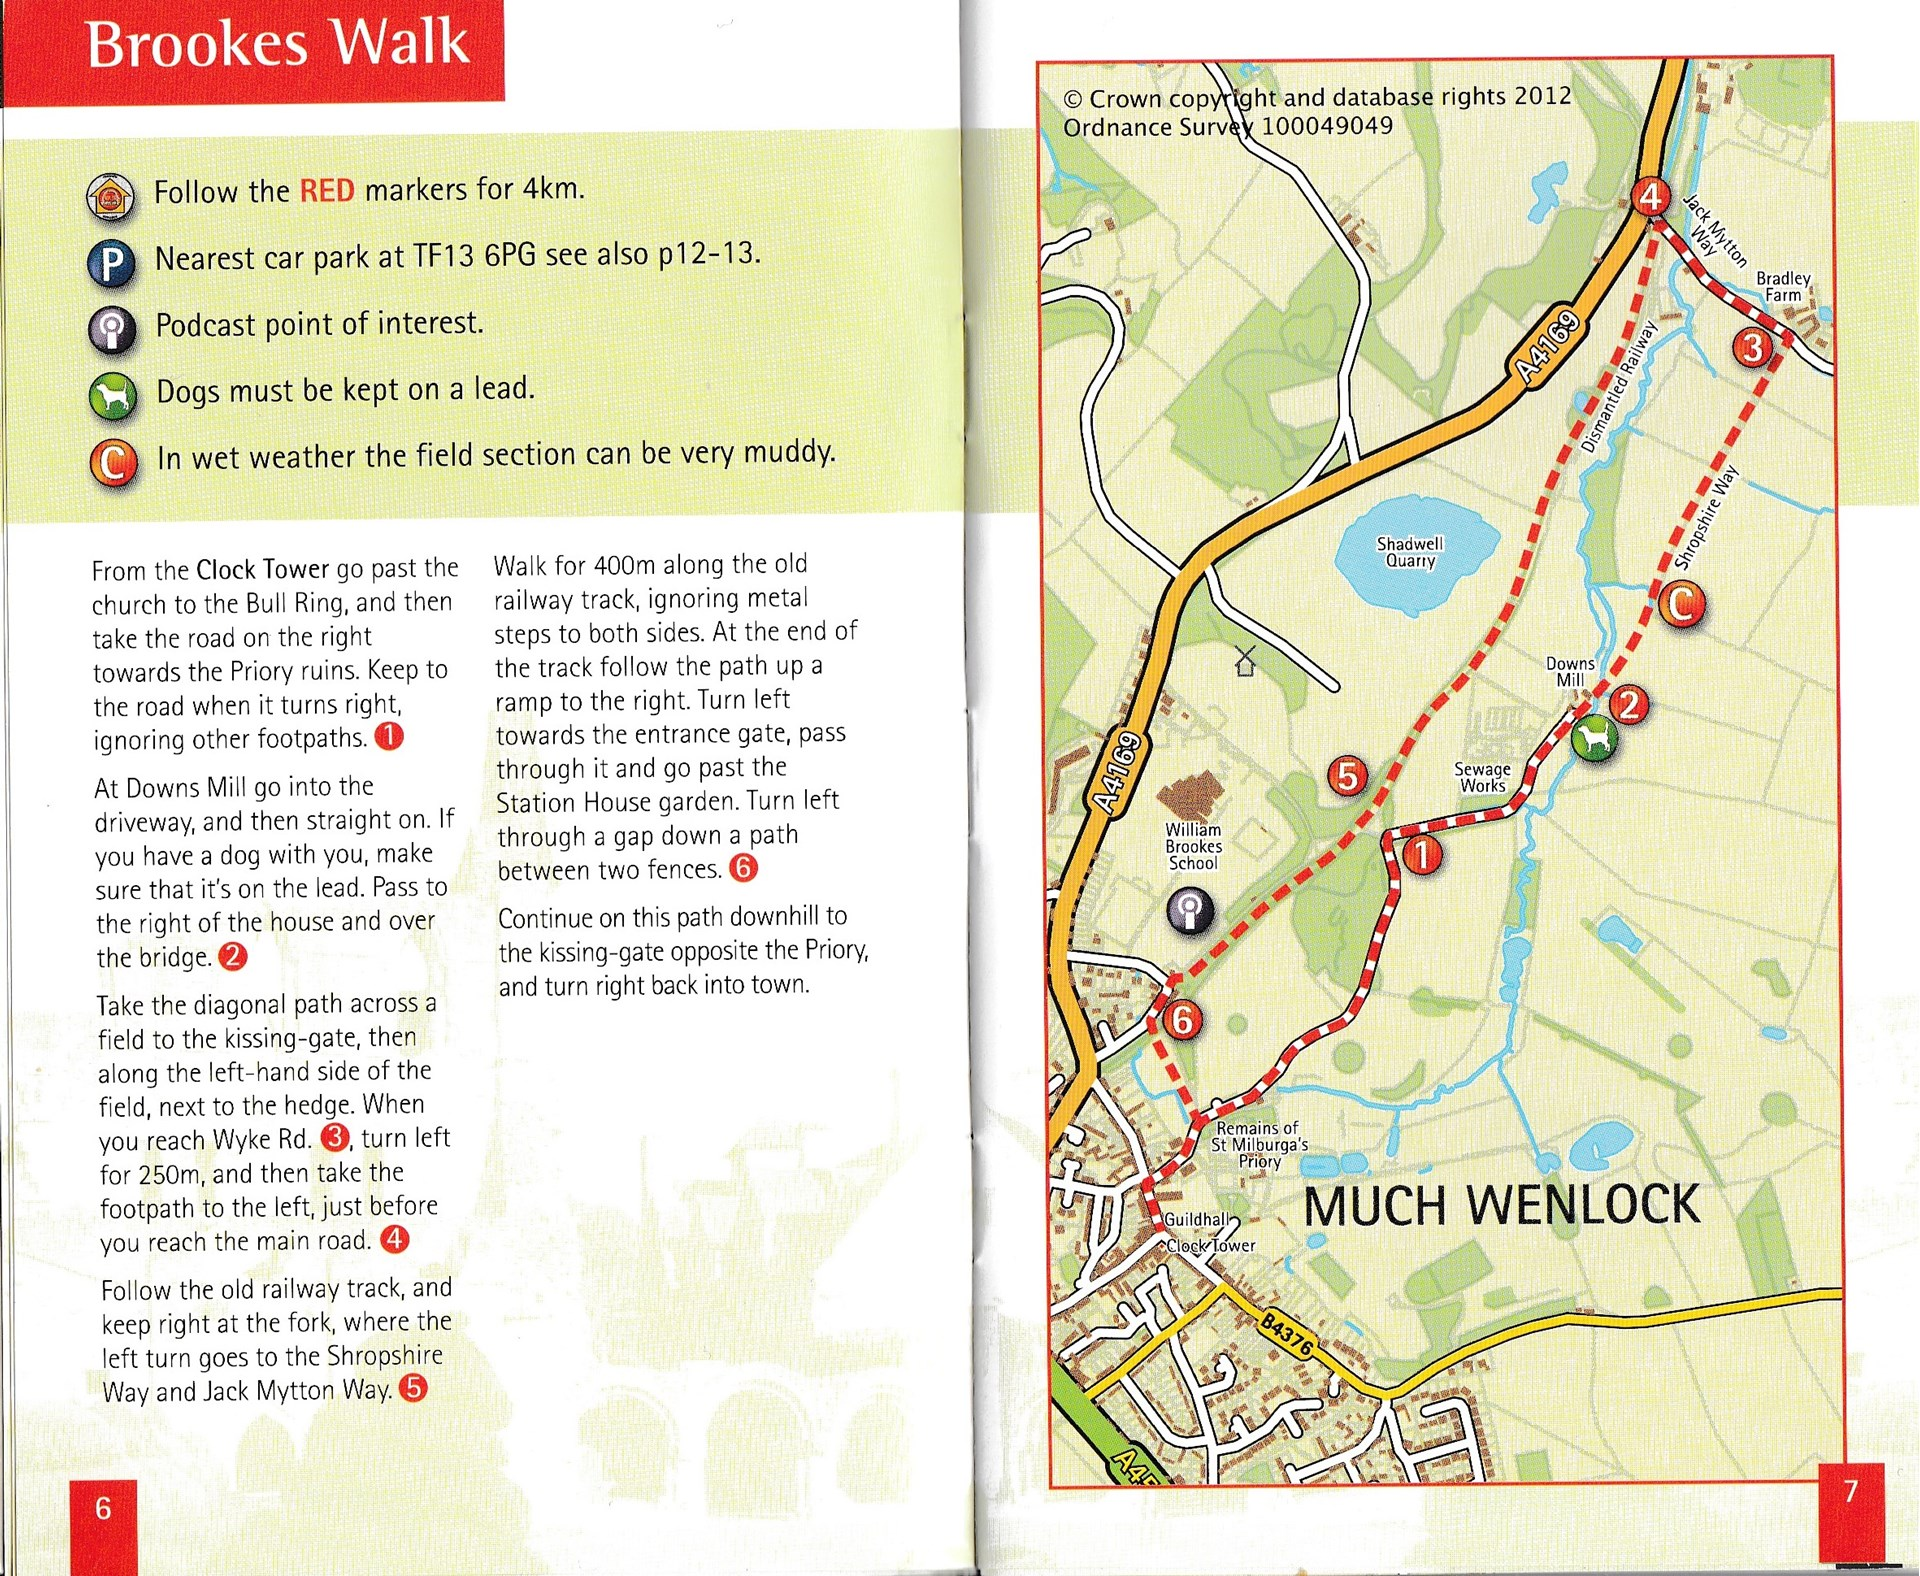 Brookes Walk Route & Map